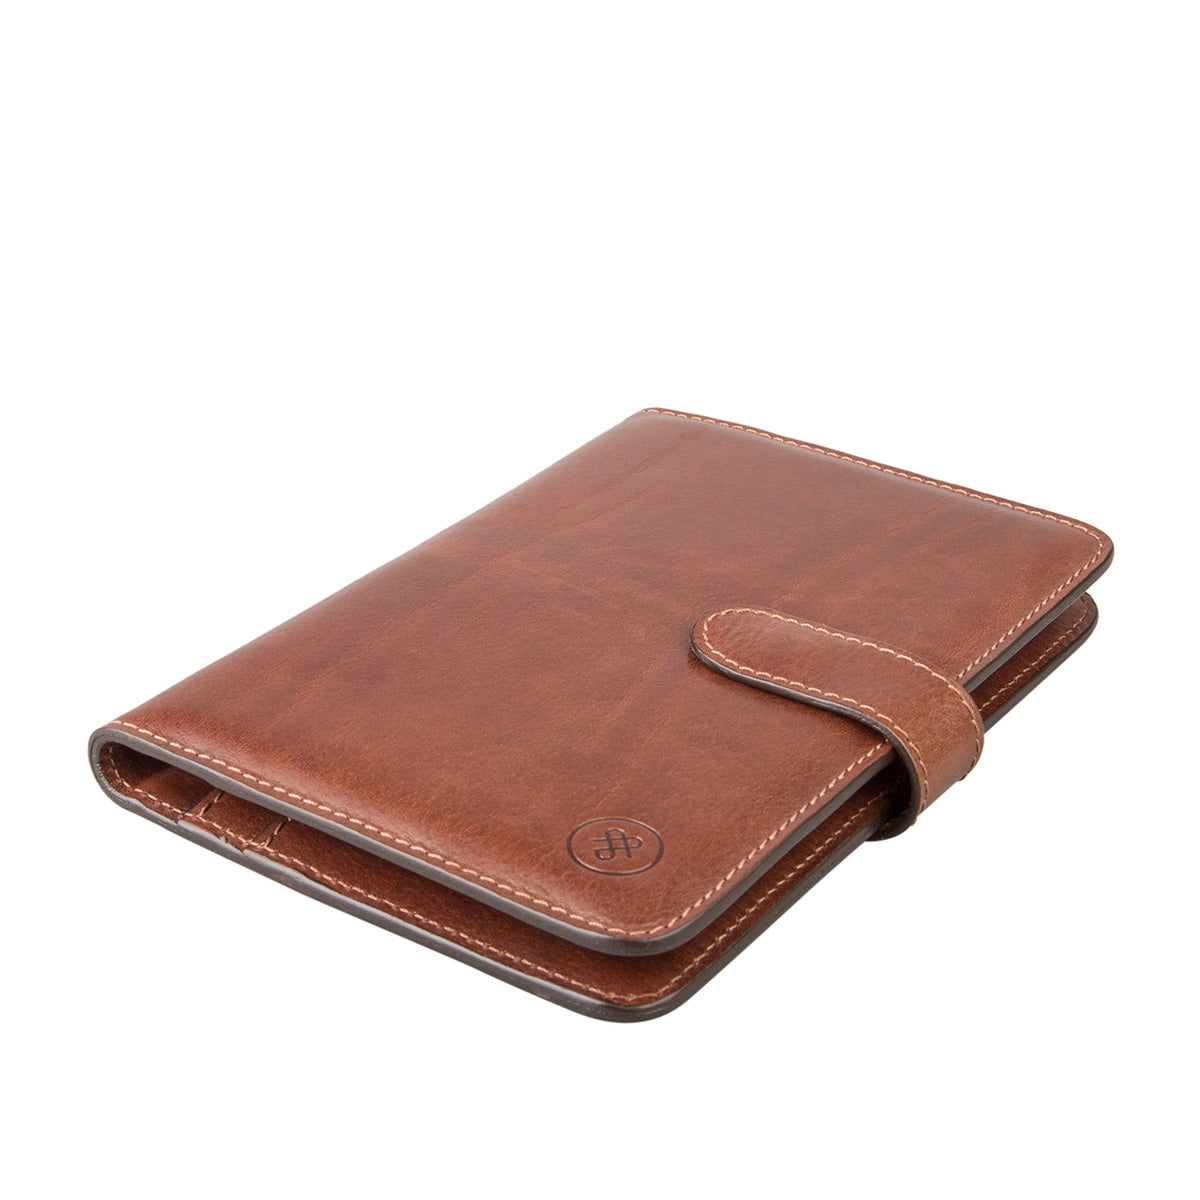 Image 4 of the 'Vieste' Chestnut Veg-Tanned Leather Travel Wallet